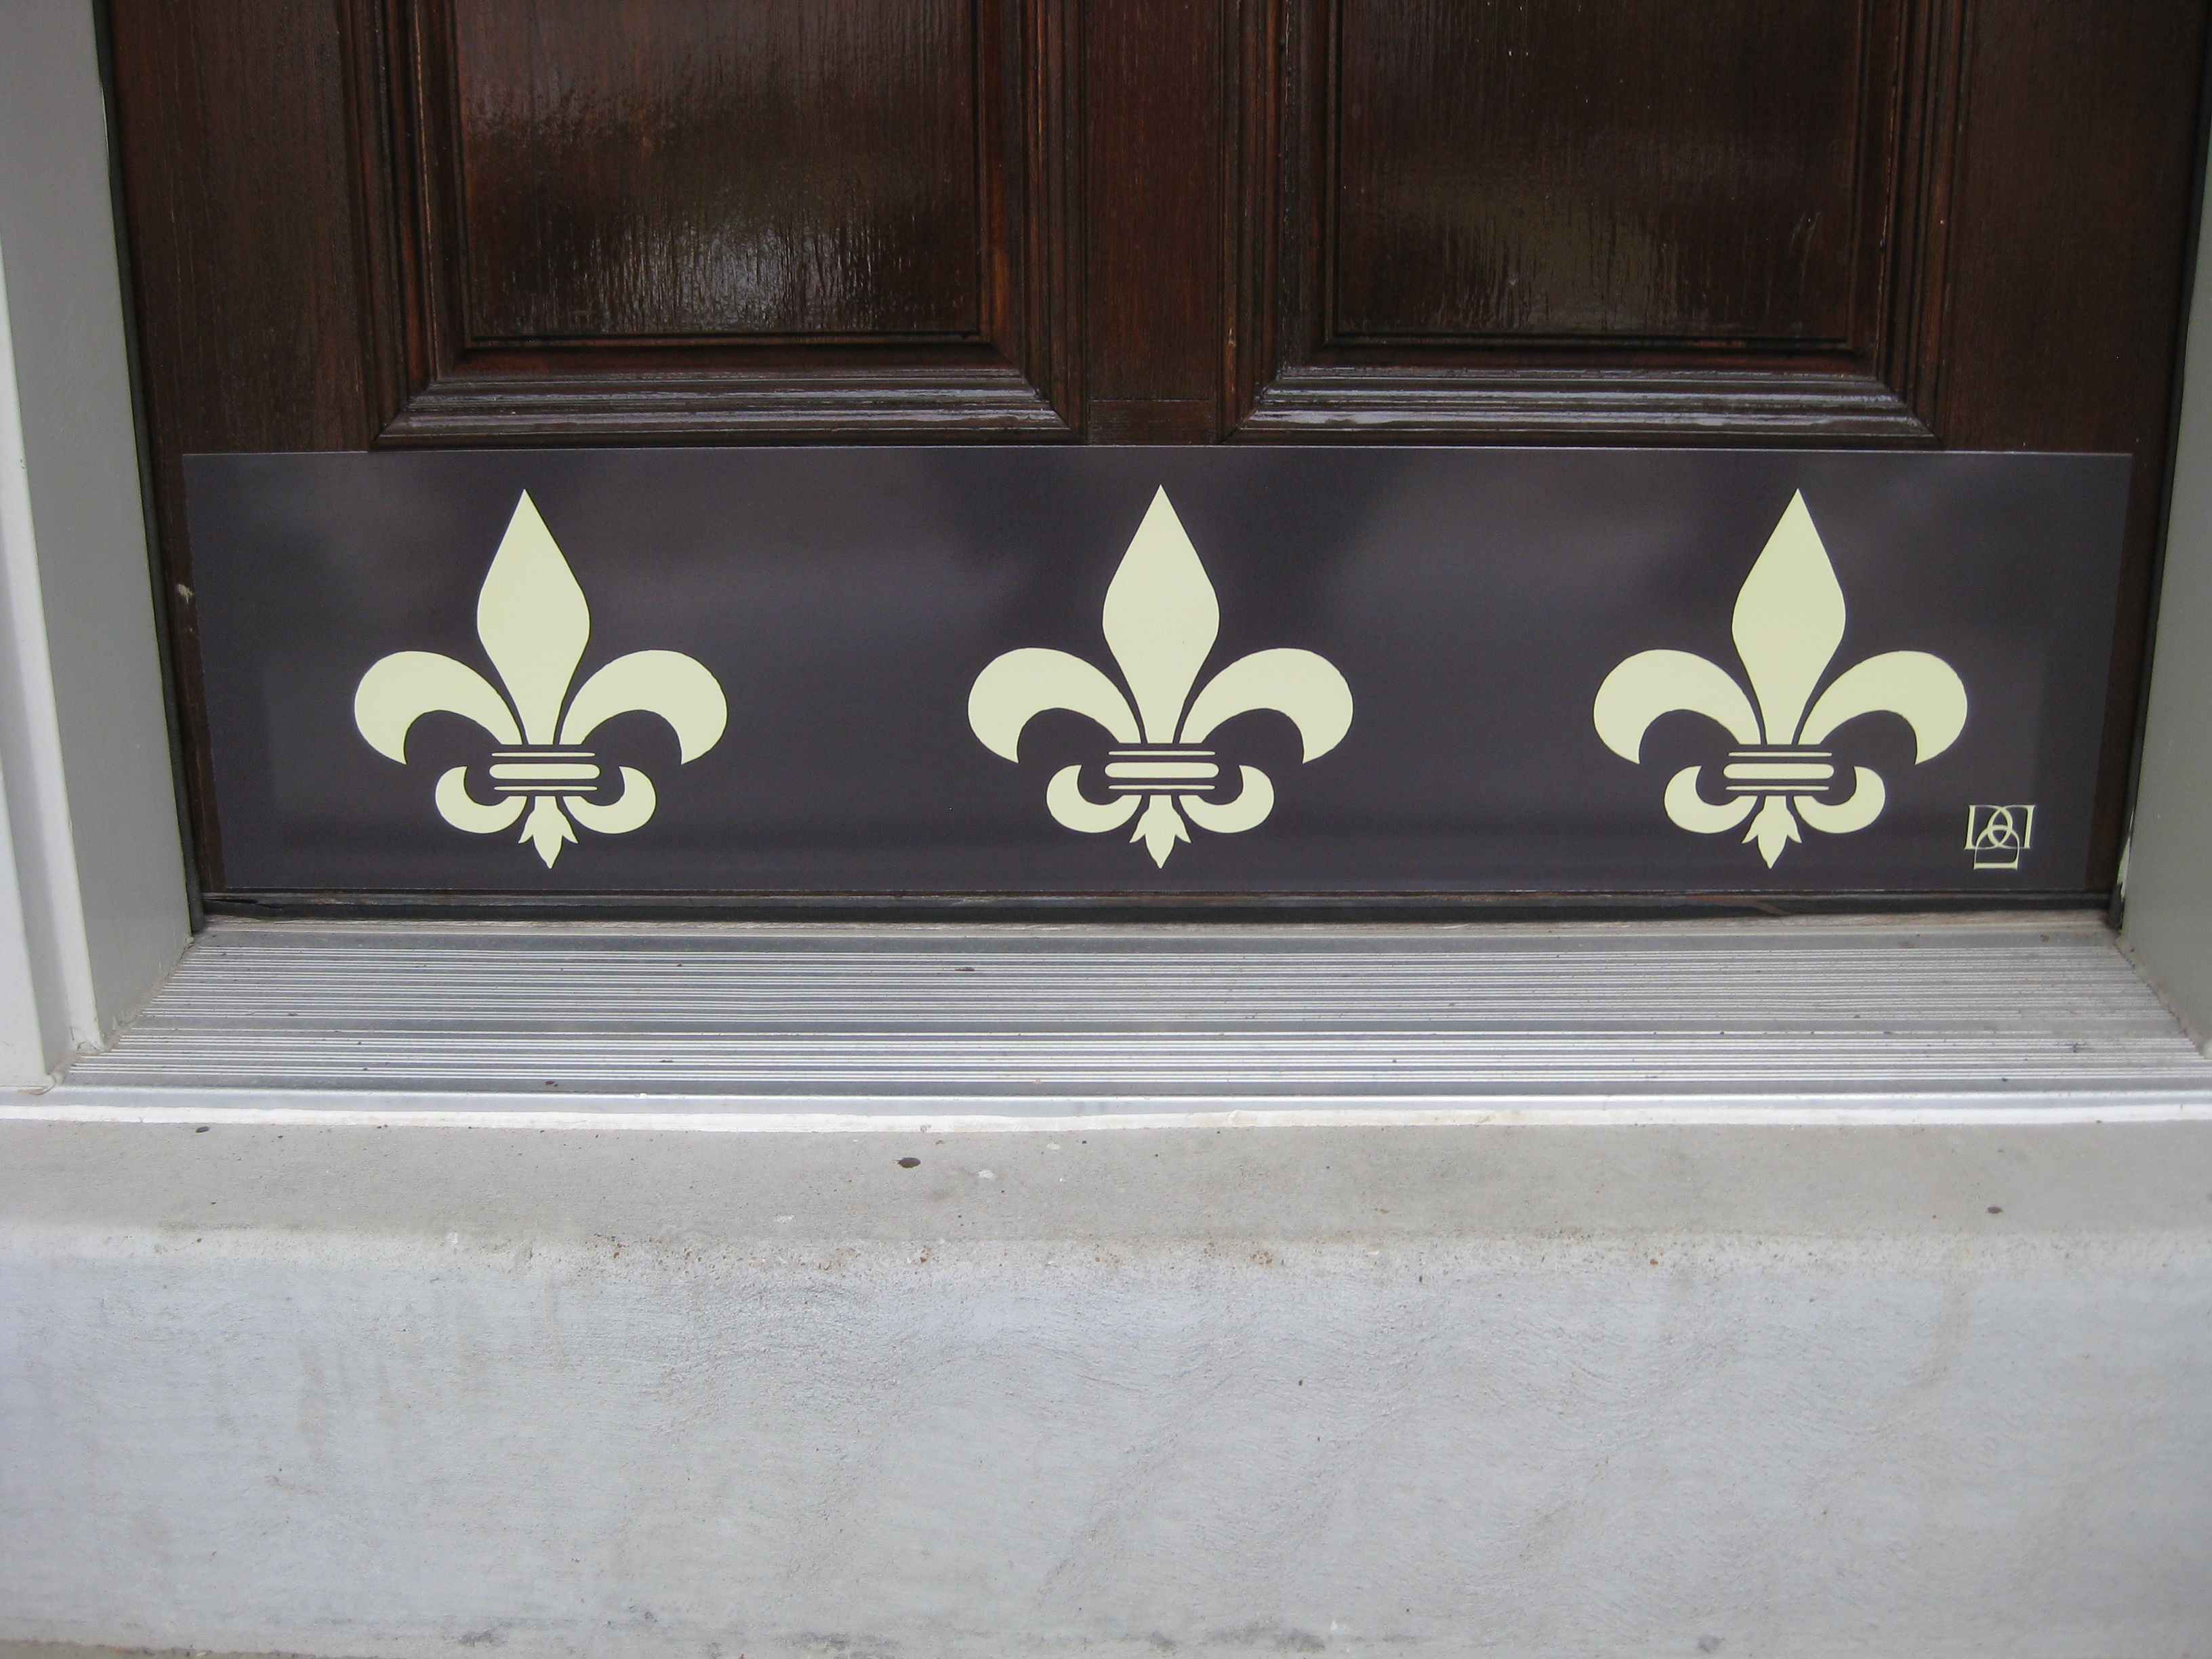 styles and of popular wall iron luxury bathroom fleur astonishing ideas wrought art mirrored with home decor de sconce files incredible lis